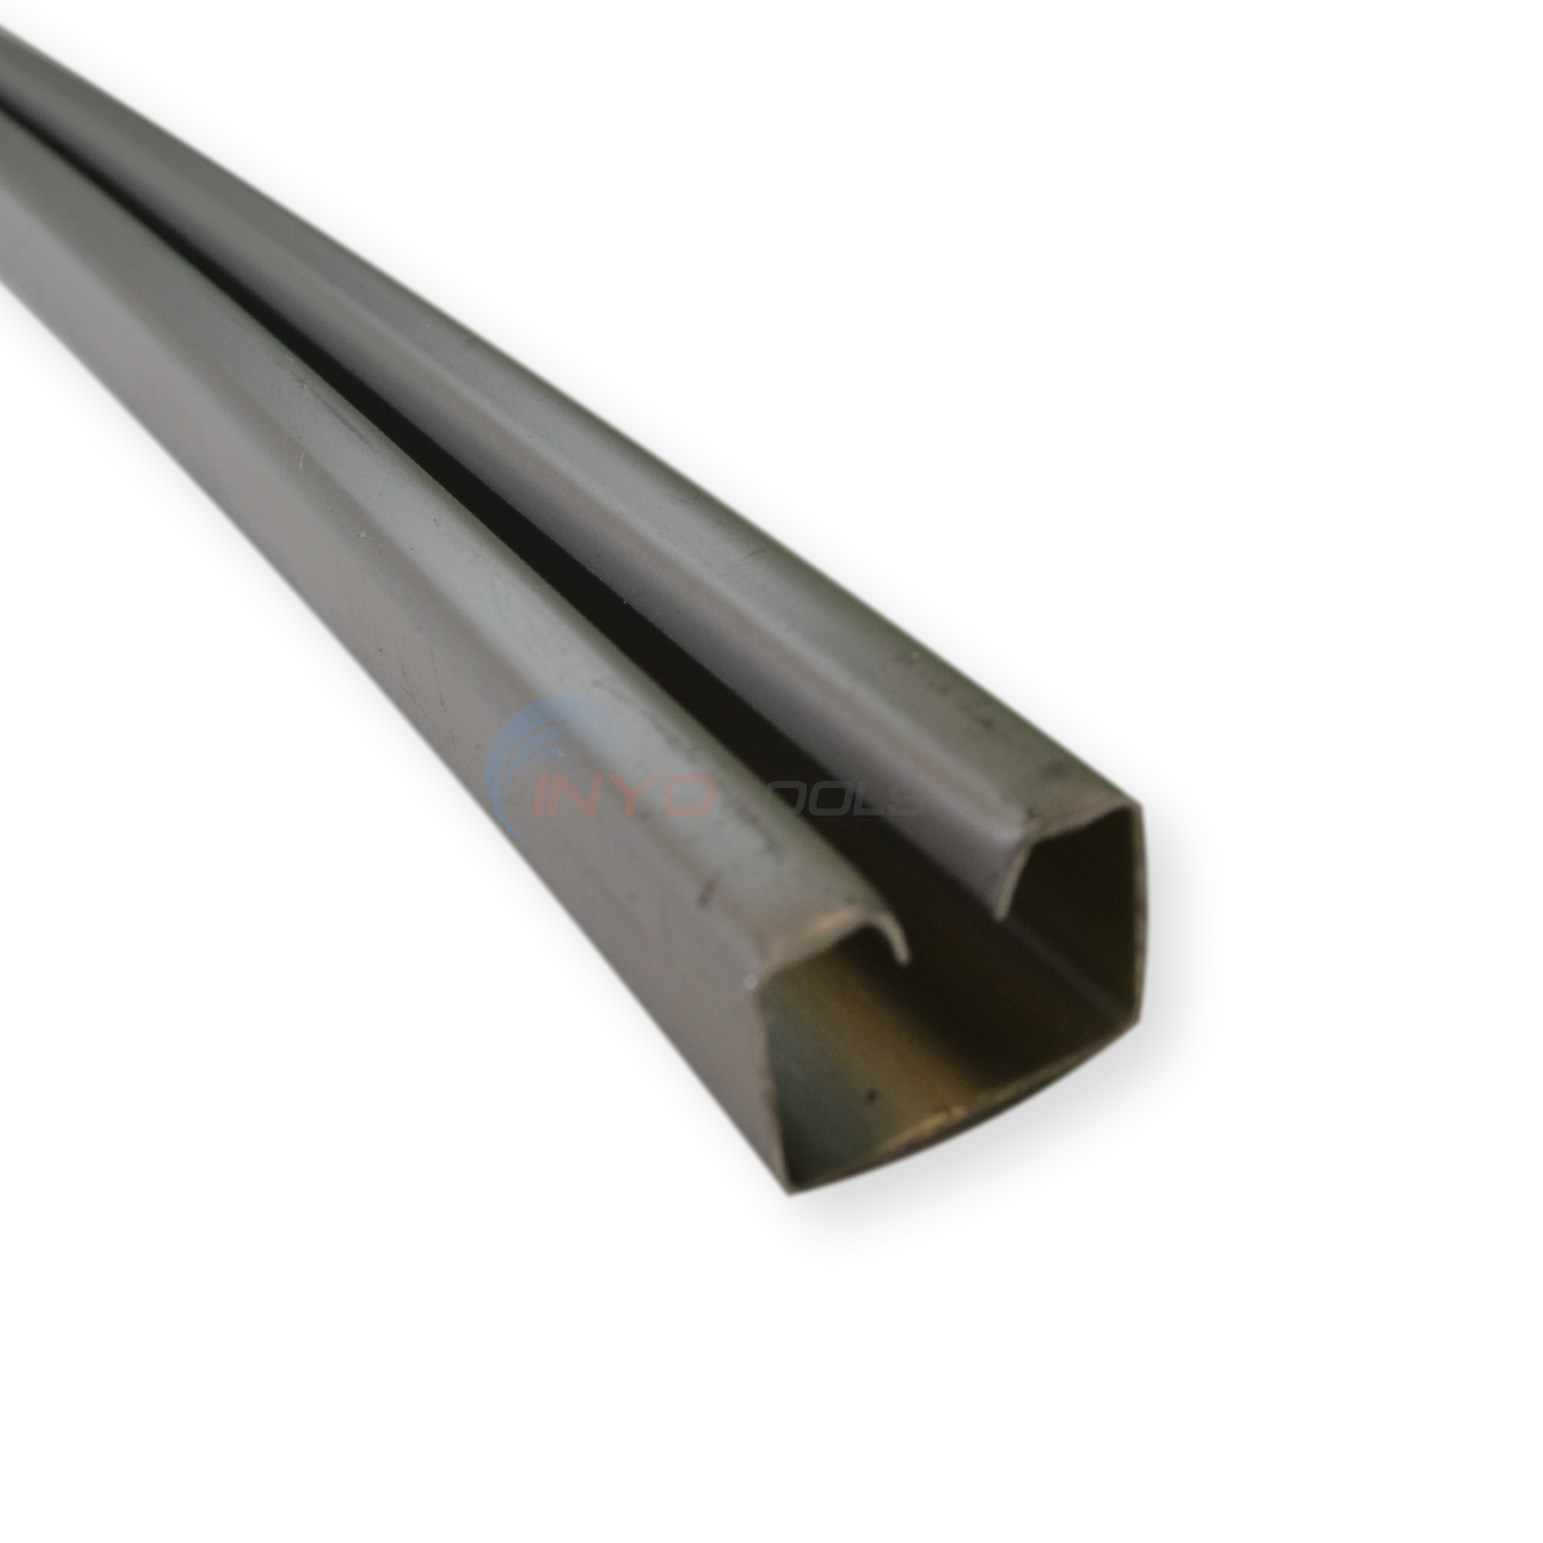 Bottom Rail Aluminuml 25-1/4""